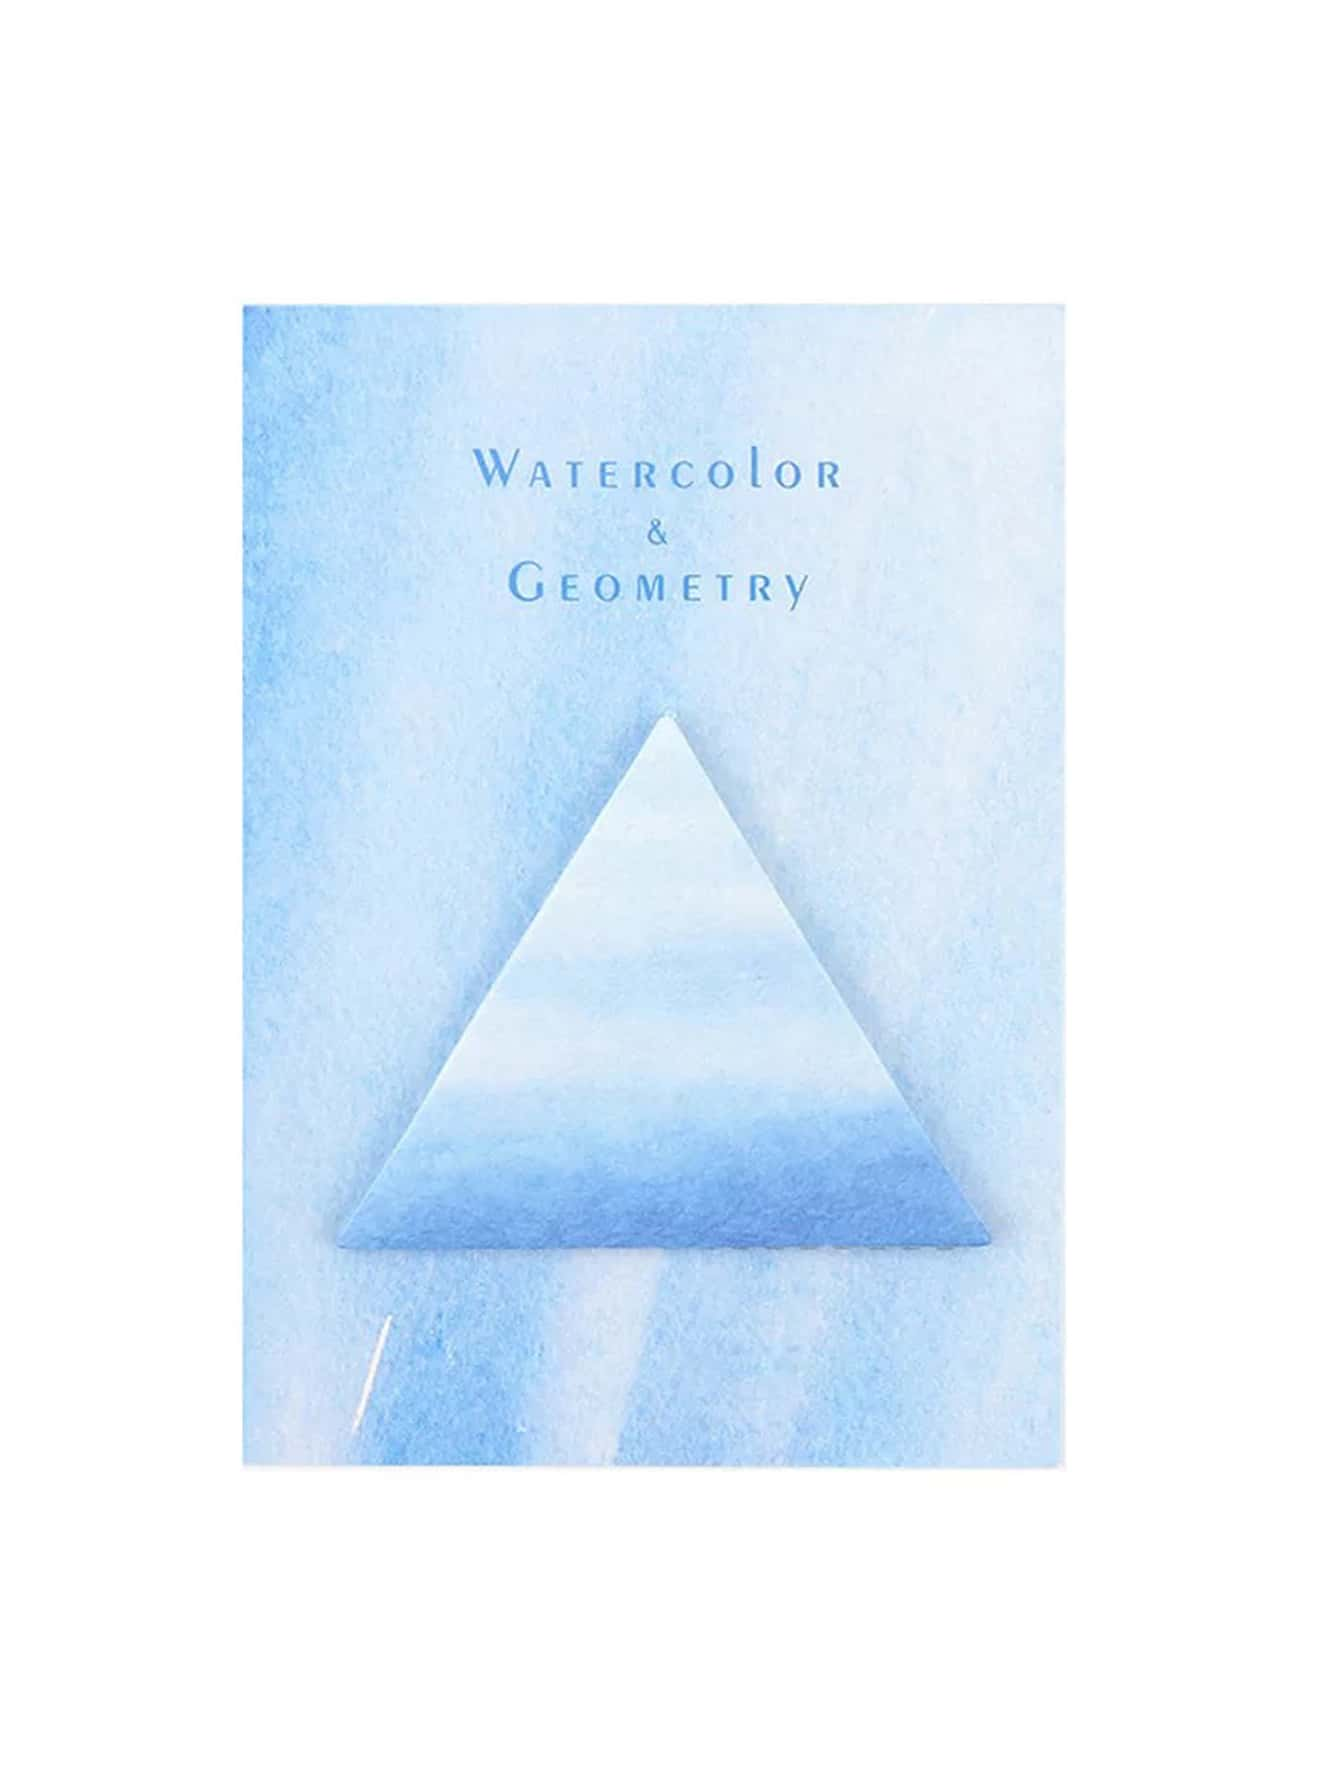 Triangle Watercolor Memo Sticker 30sheets maxsun maxsun мс b350d4 турбо материнская плата amd b350 гнездо ам4